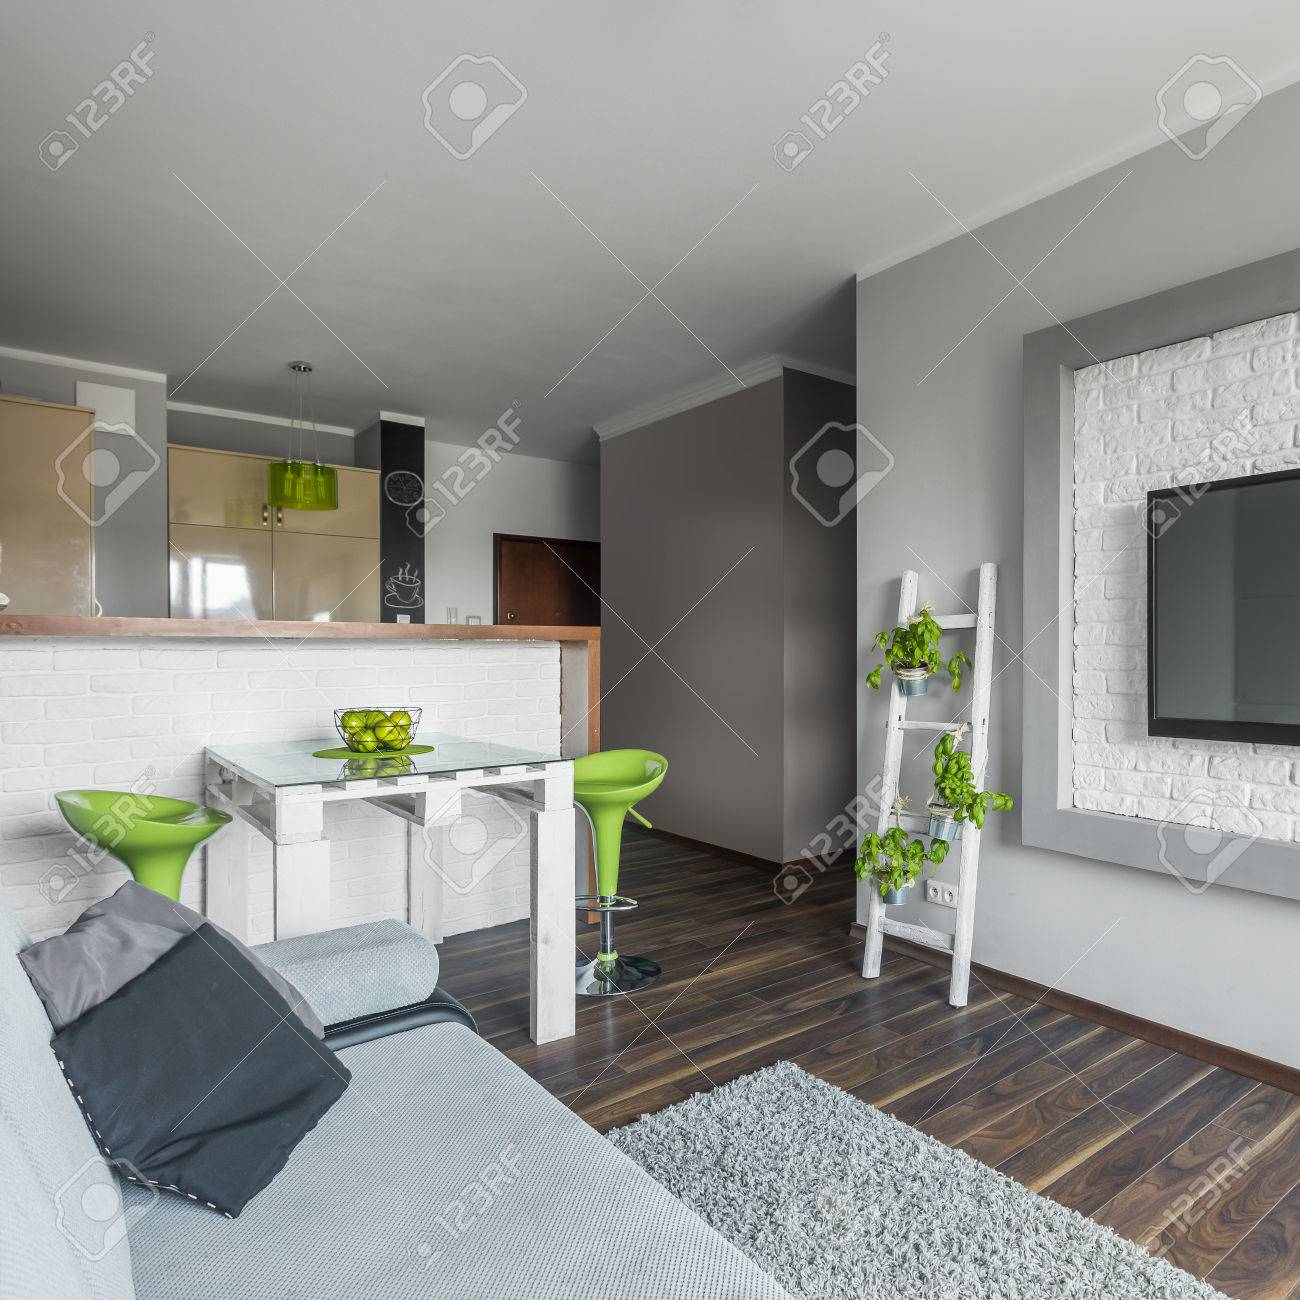 Small but functional modern apartment in grey and white with..